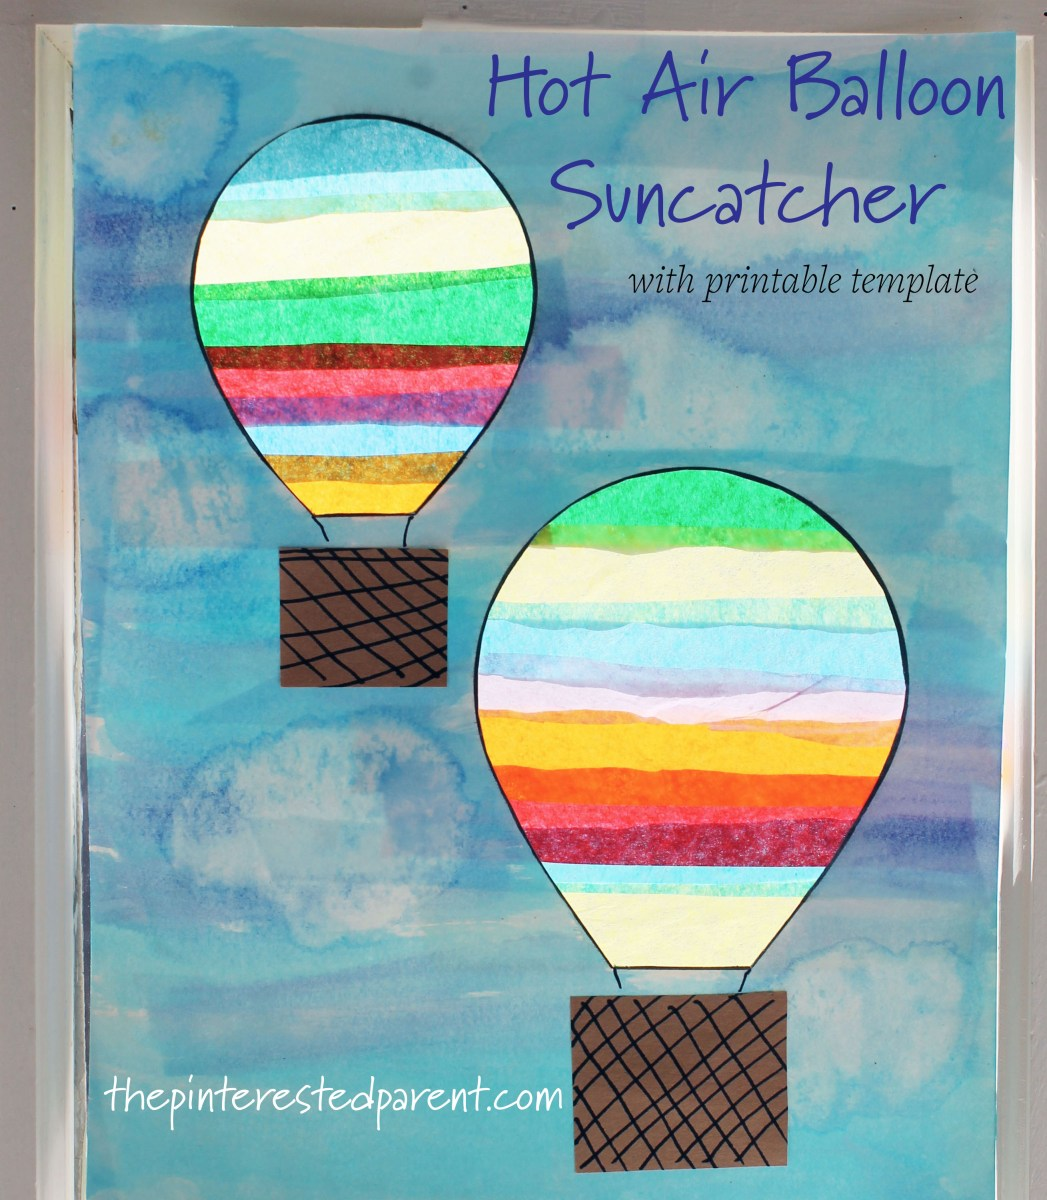 Hot Air Balloon Suncatcher